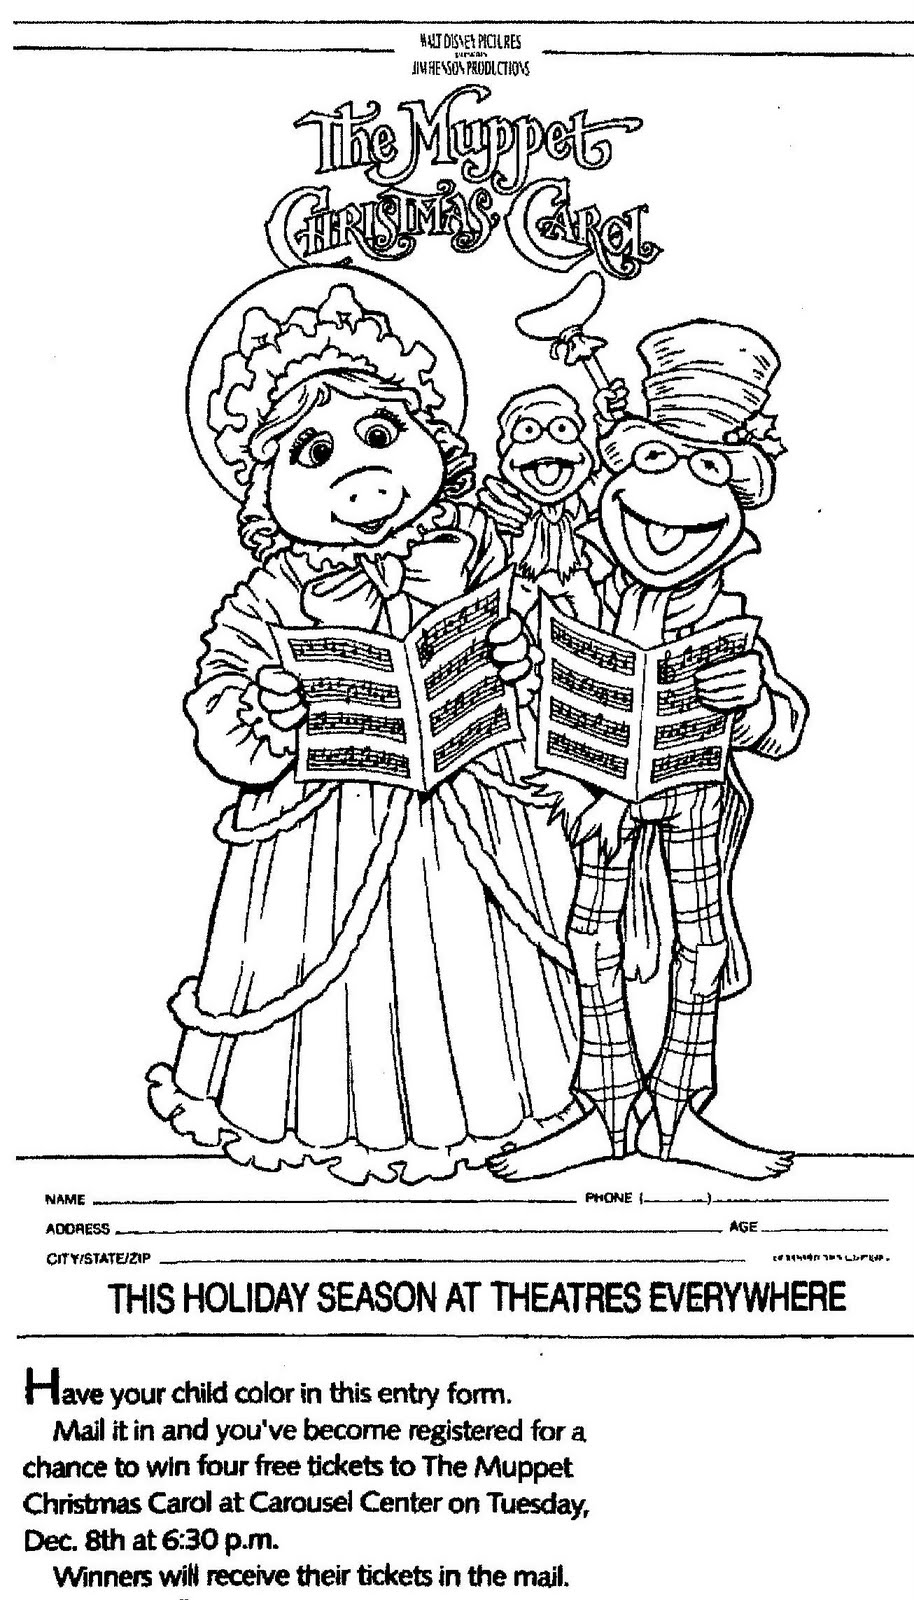 Christmas Coloring Contest With Mostly Paper Dolls THE MUPPET CHRISTMAS CAROL Movie